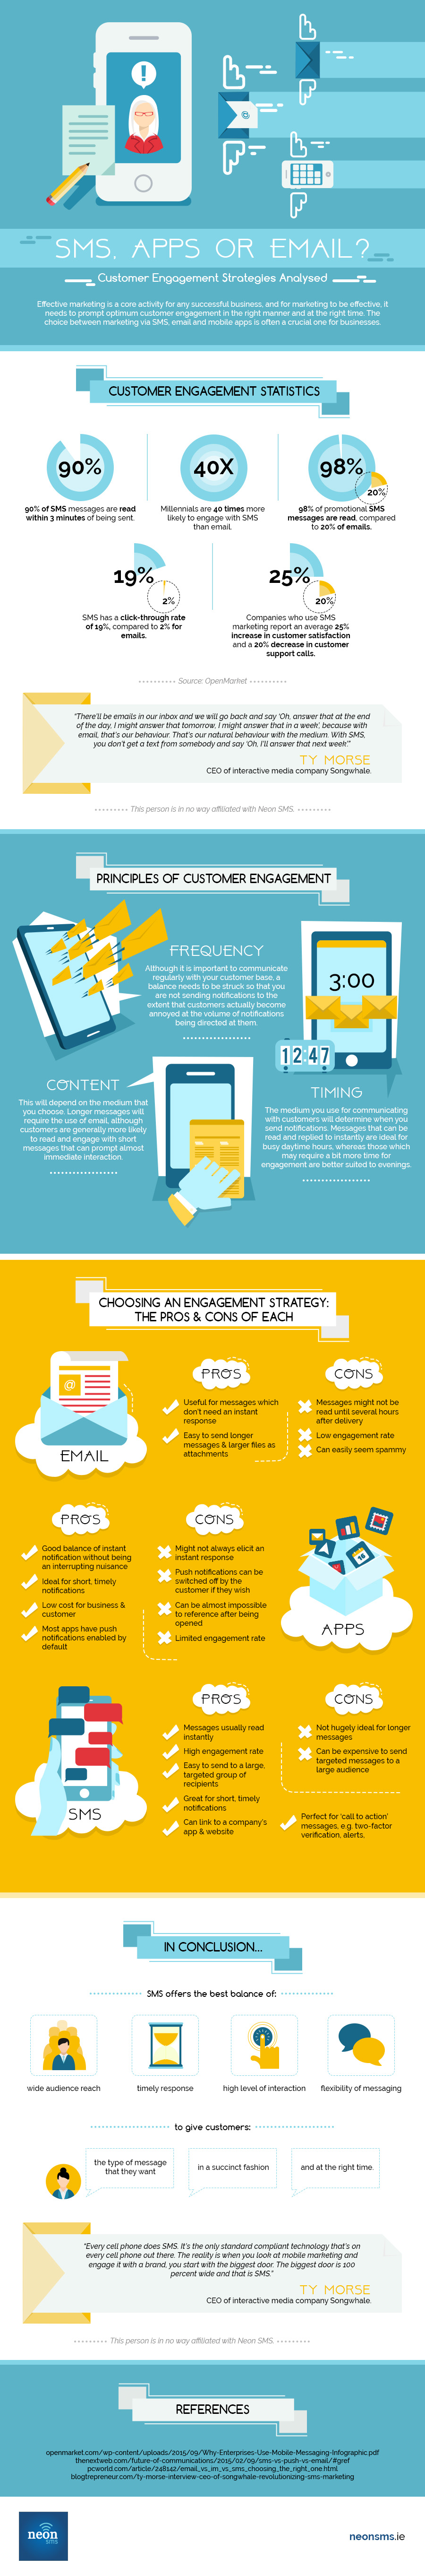 Neon-IE-SMS-APPS-Infographic